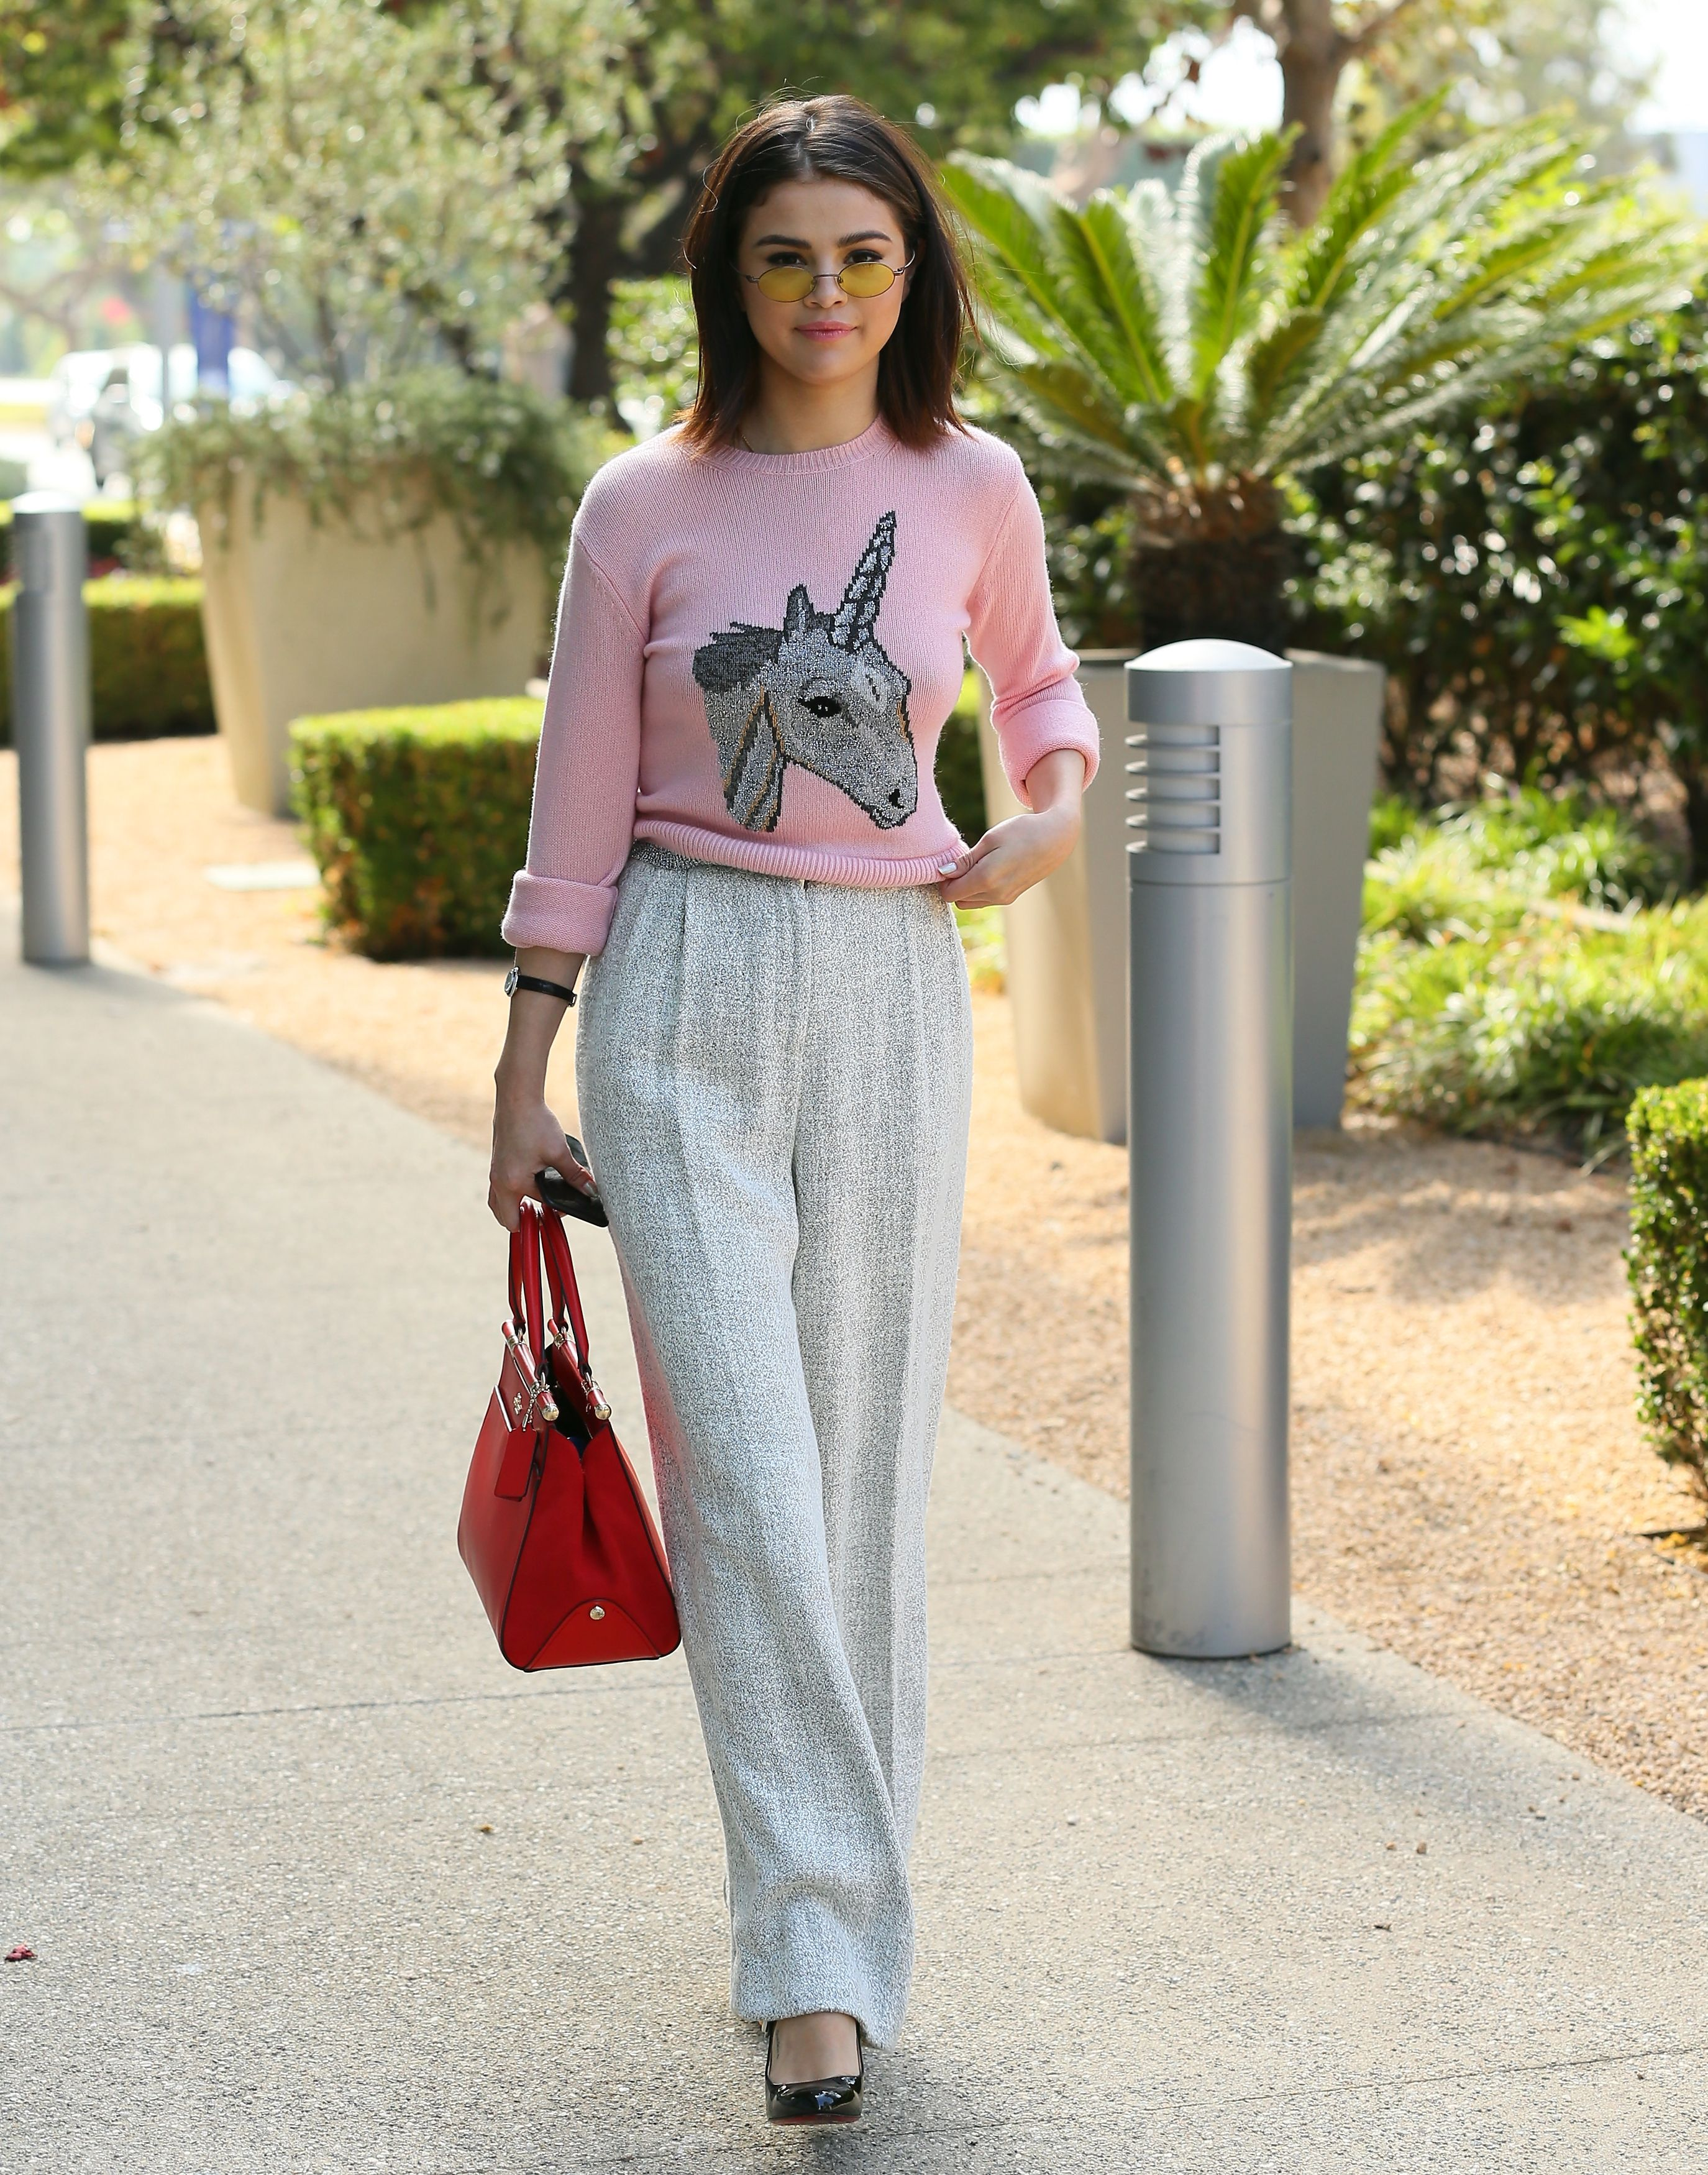 641d0554408cf6 Best Selena Gomez Outfits - Cutest Selena Gomez Looks and Street Style